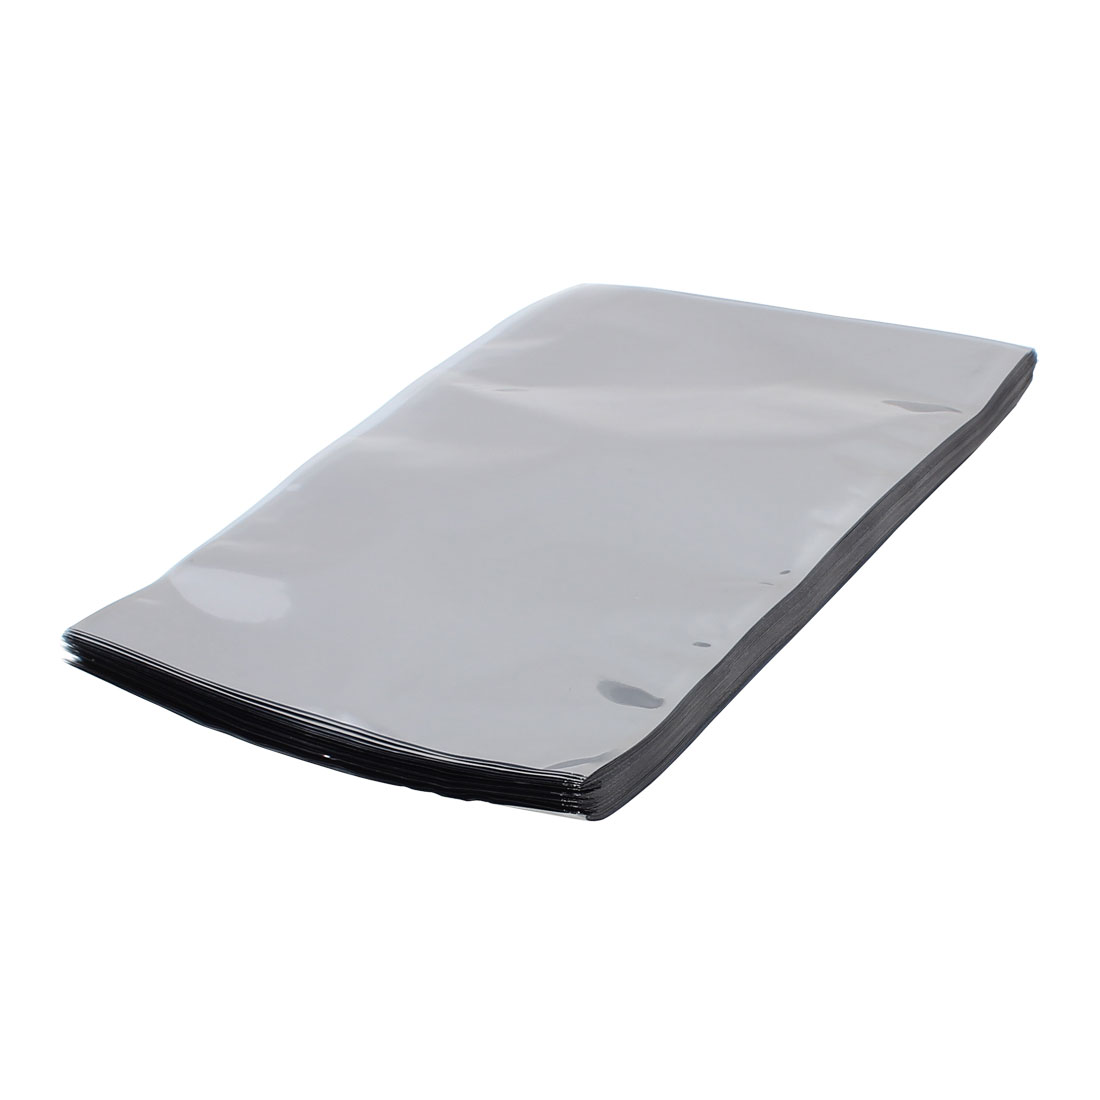 100 Pcs 200mm x 300mm Silver Tone Flat Open Top Anti Static Bag For Electronics